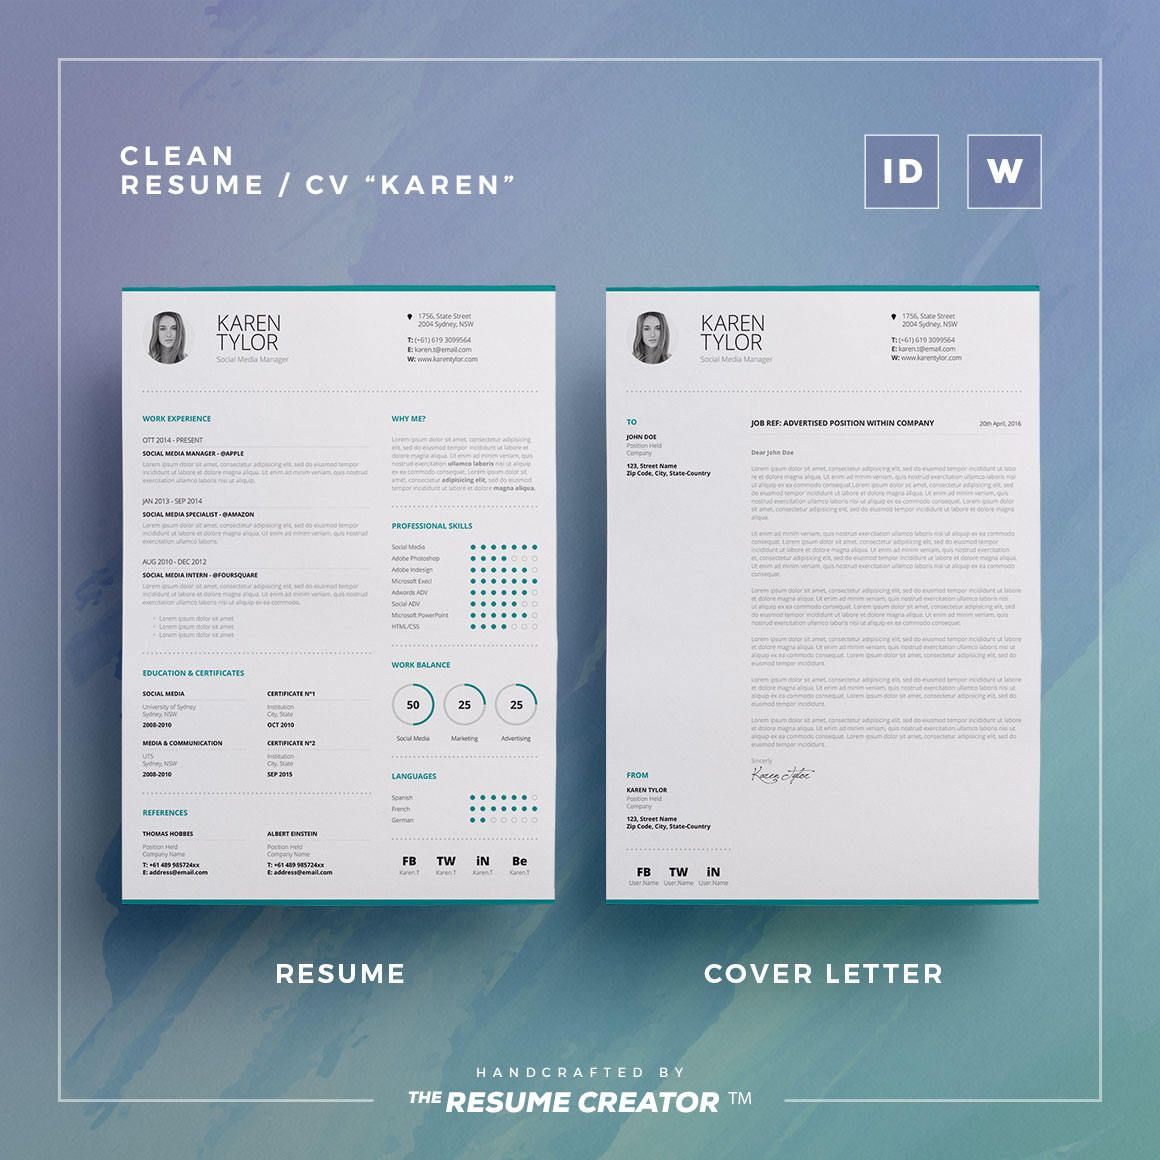 Clean Resume Vol  Word And Indesign Template  Etsy  Trc Shop